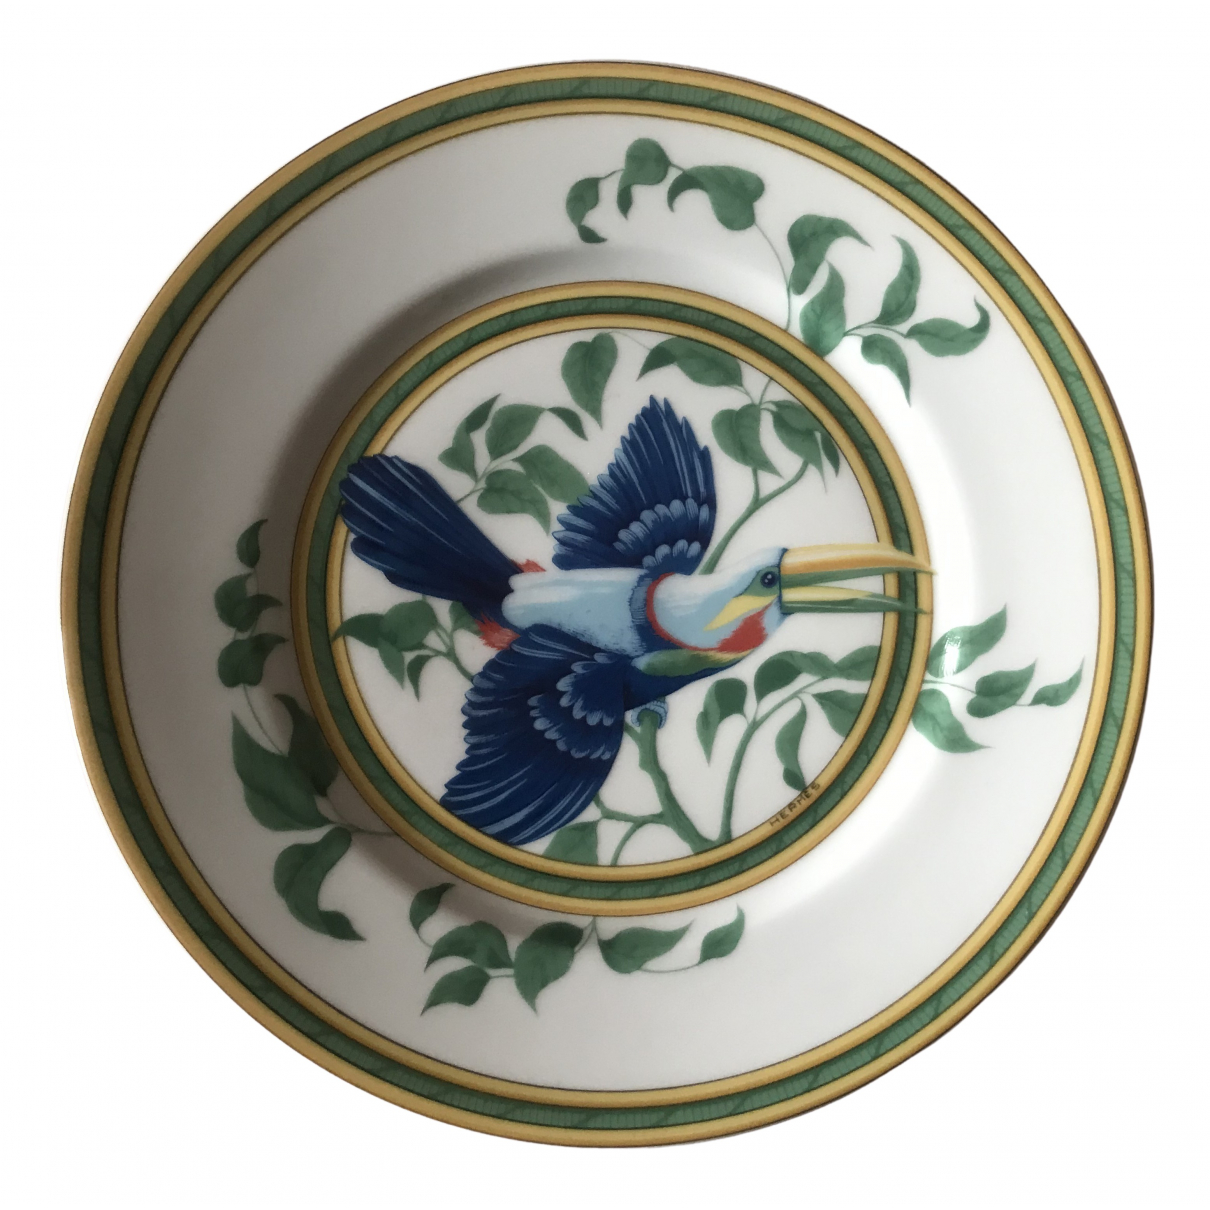 Hermes - Arts de la table Toucans pour lifestyle en porcelaine - multicolore